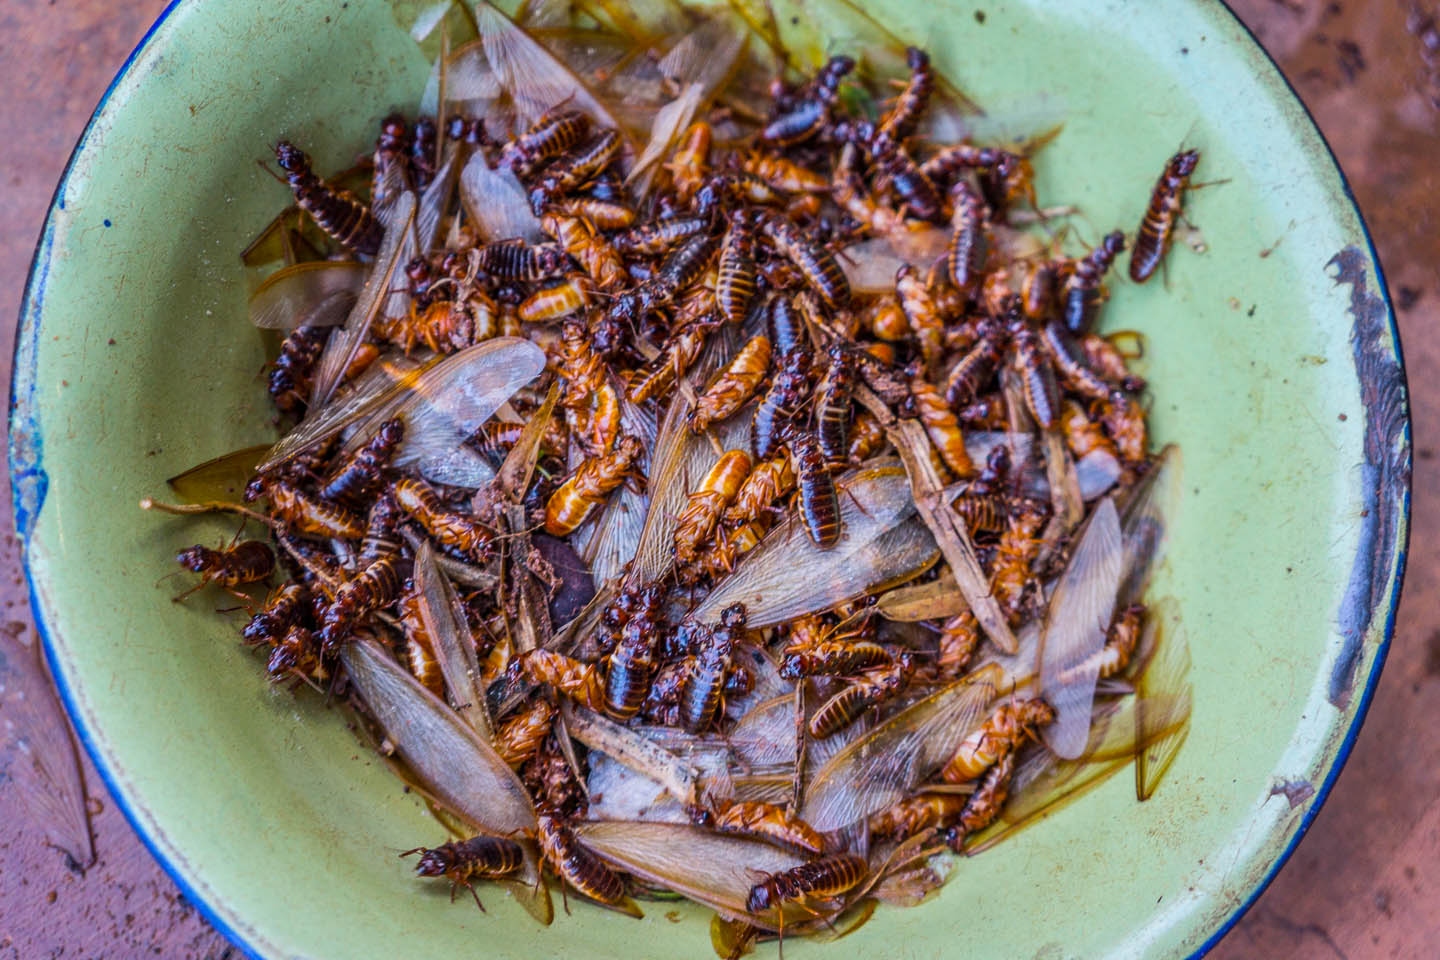 termites with wings collected at the start of the rainy season